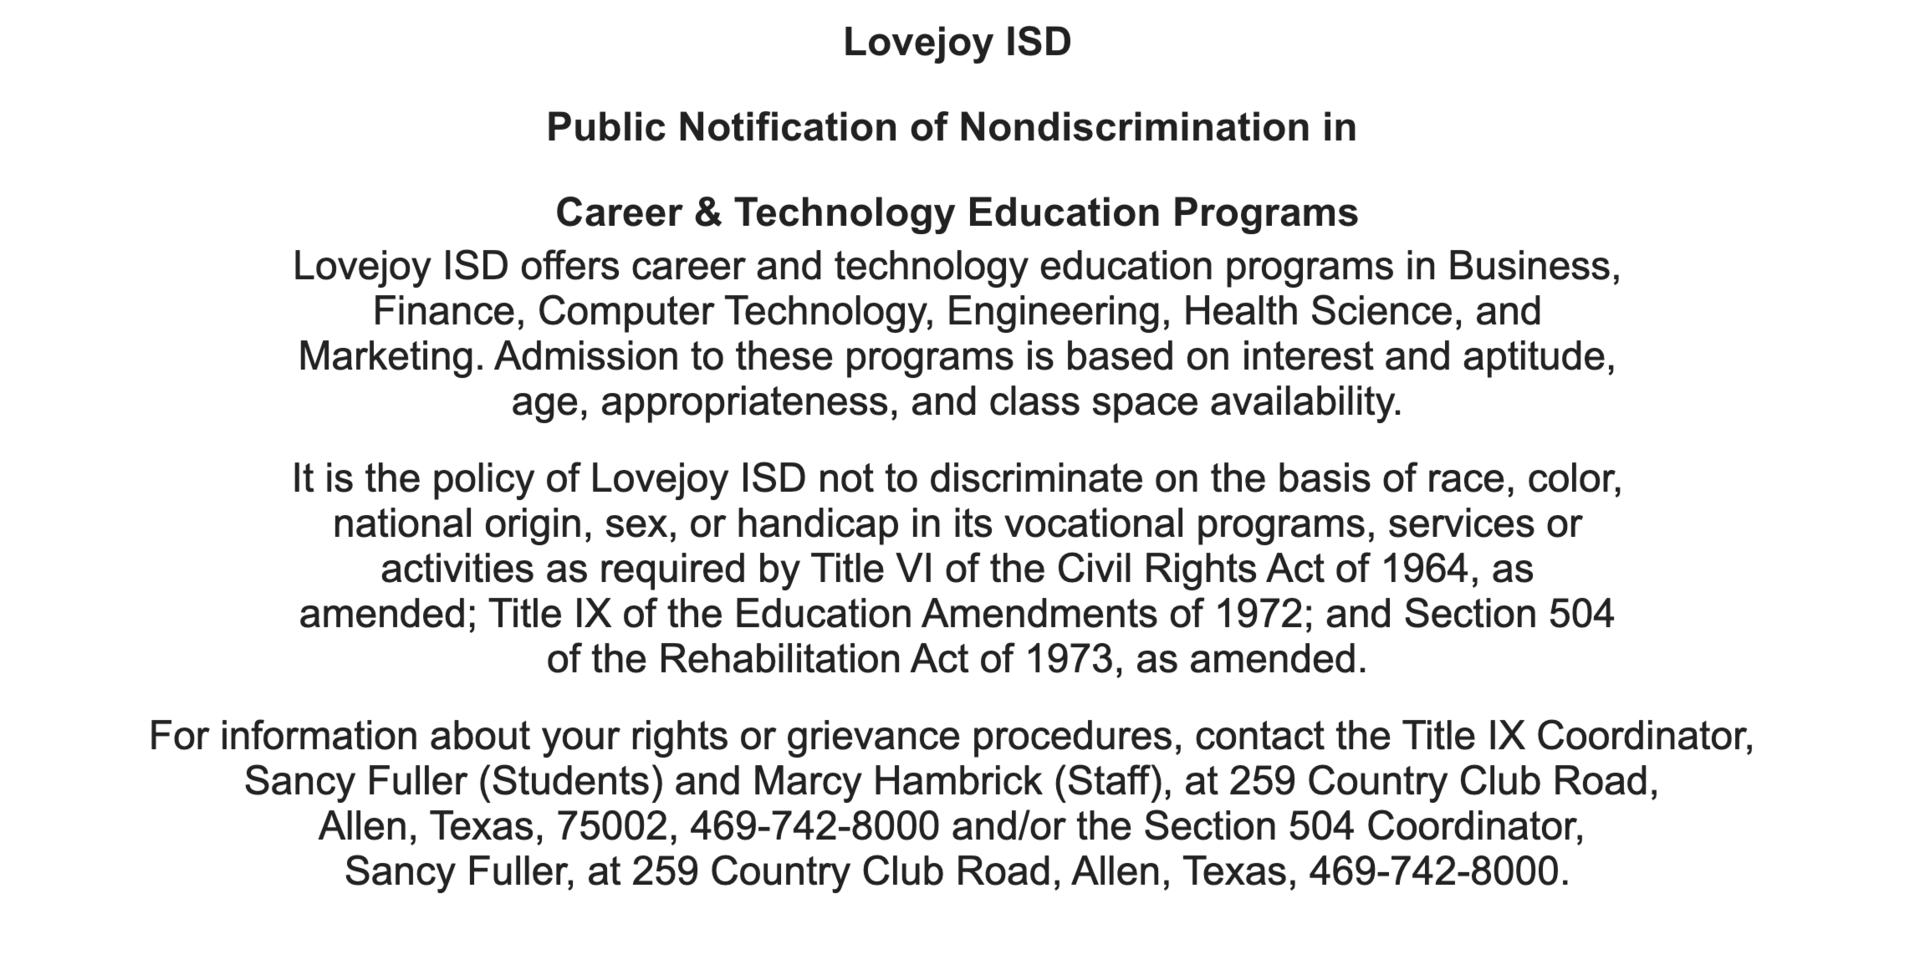 Public Notification of Nondiscrimination in Career & Technology Education Programs statement